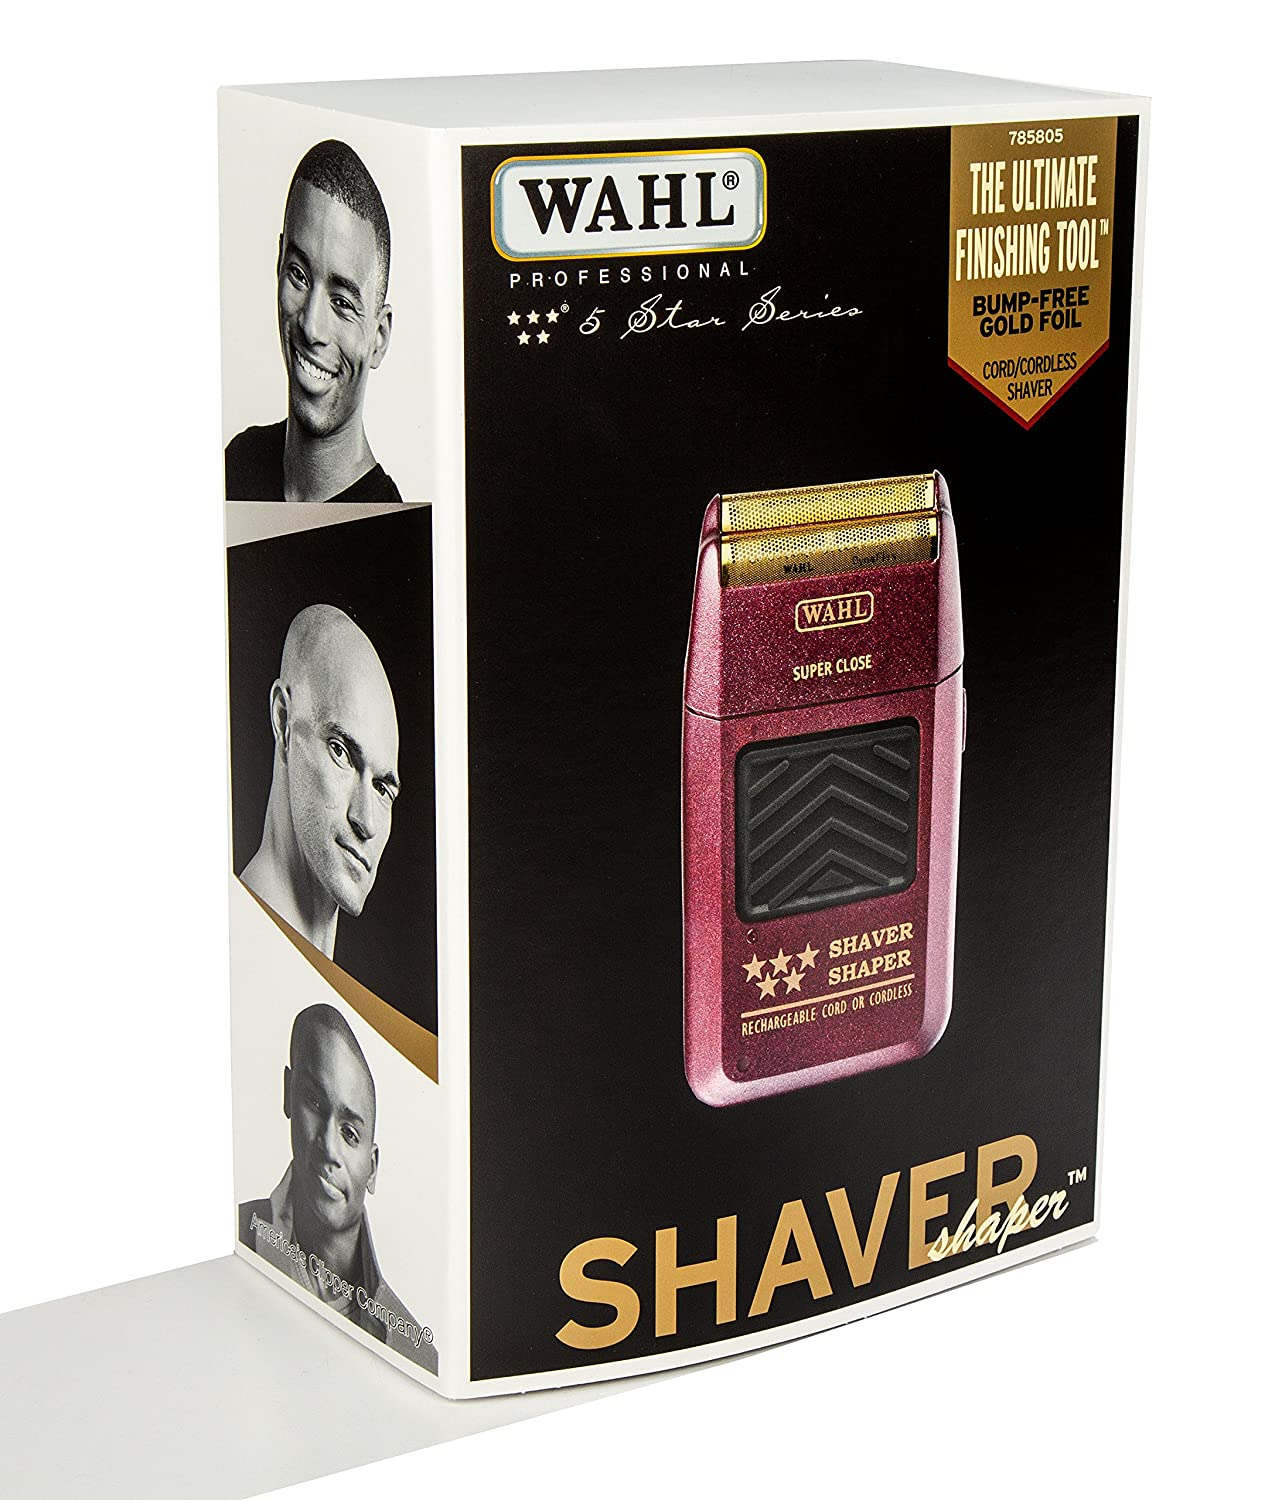 Wahl Professional 5 Star Series Rechargeable Shaver Electrical Wall Outlet Wiring Newhairstylesformen2014com Shaper 8061 100 Up To 60 Minutes Of Run Time Bump Free Ultra Close Shave Beauty